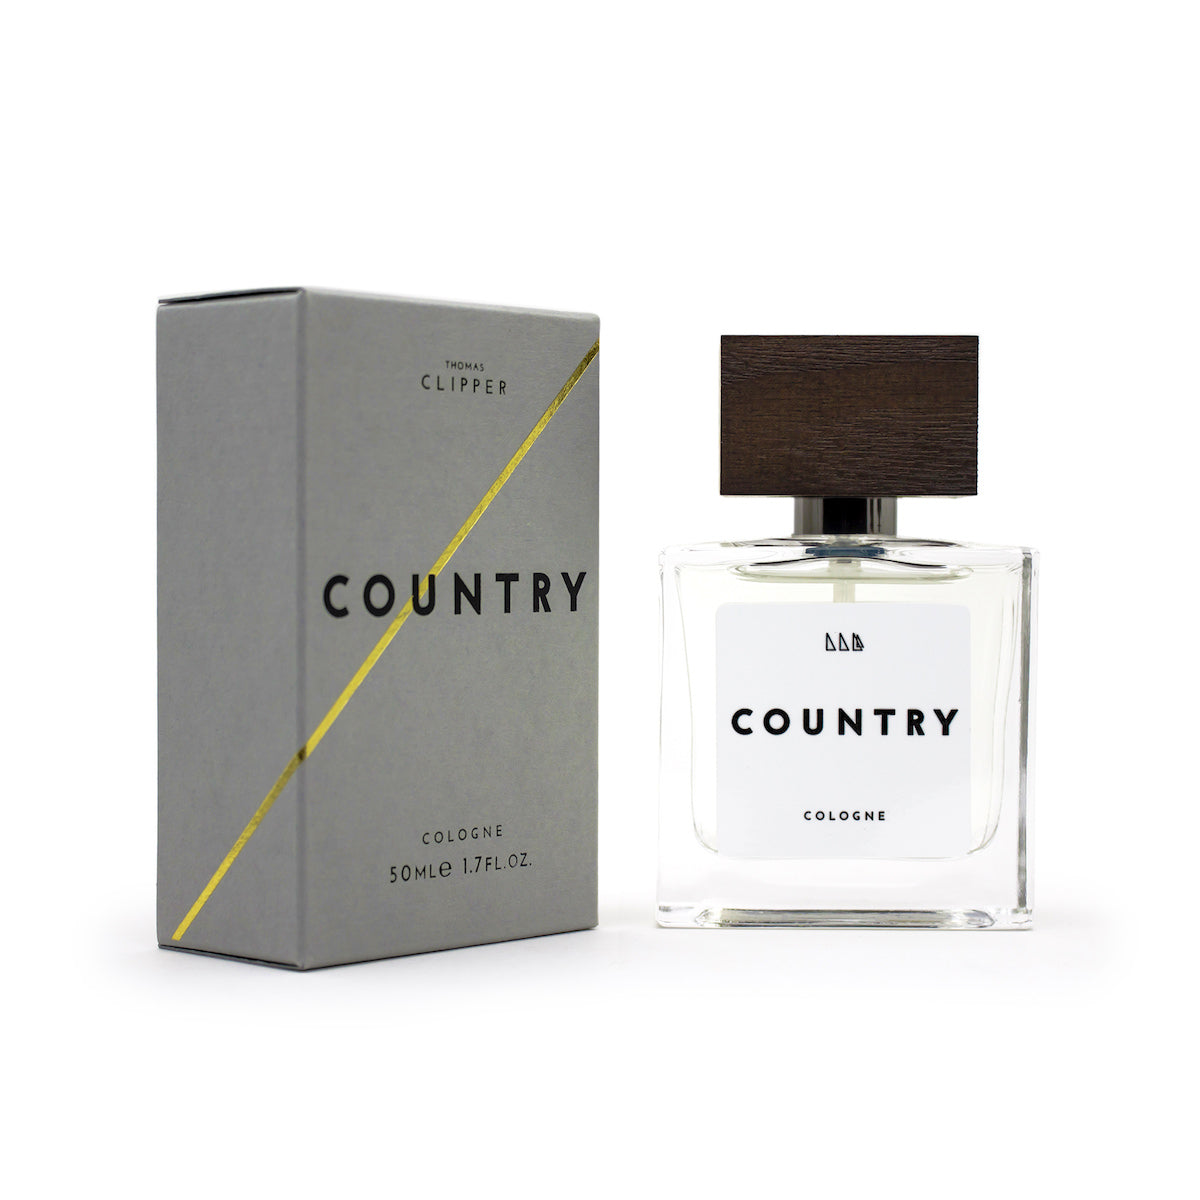 Country 50ml - Cologne by Thomas Clipper